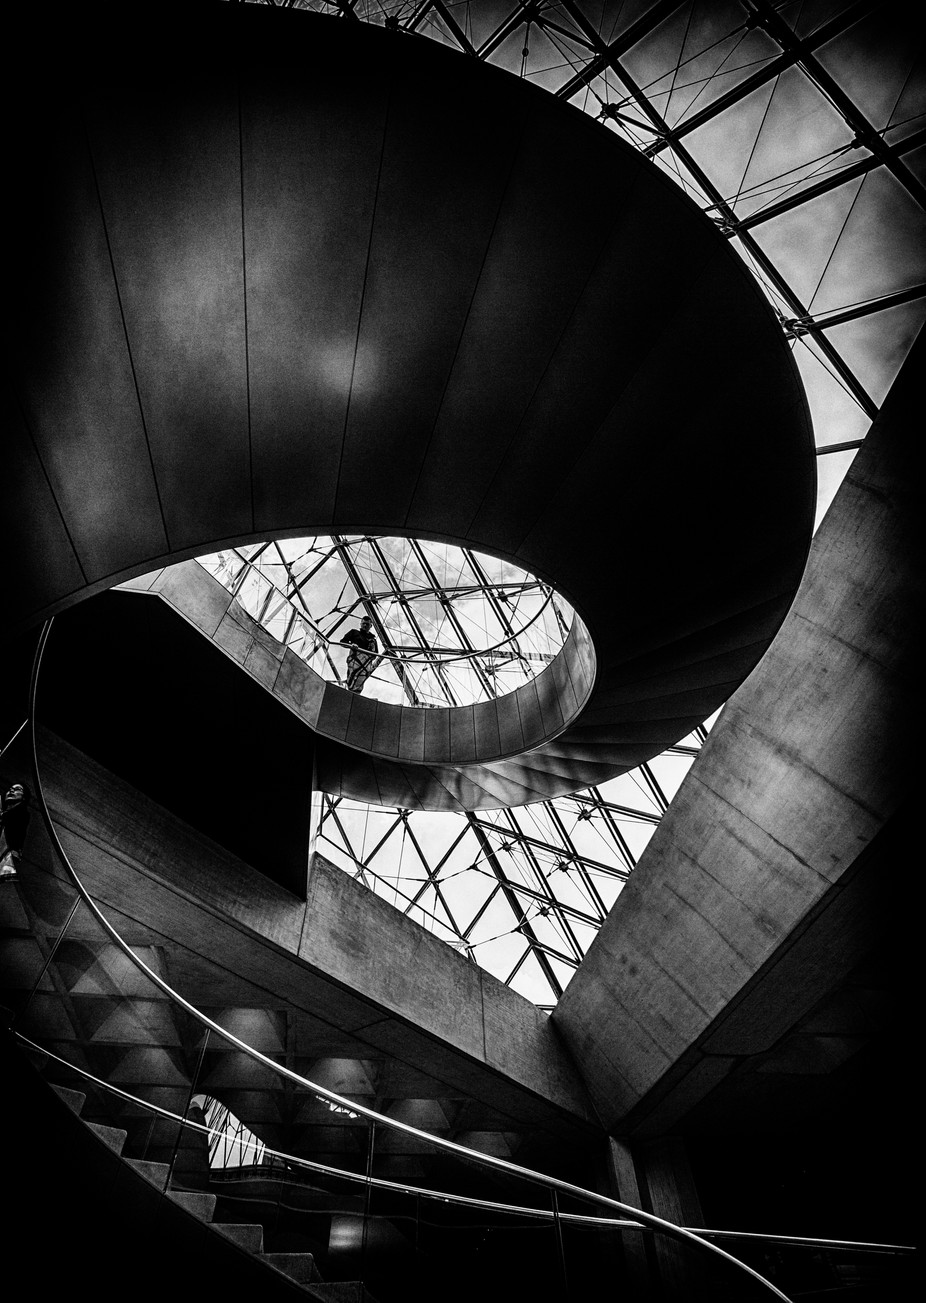 On the stairs by ChristerW - Spirals And Composition Photo Contest